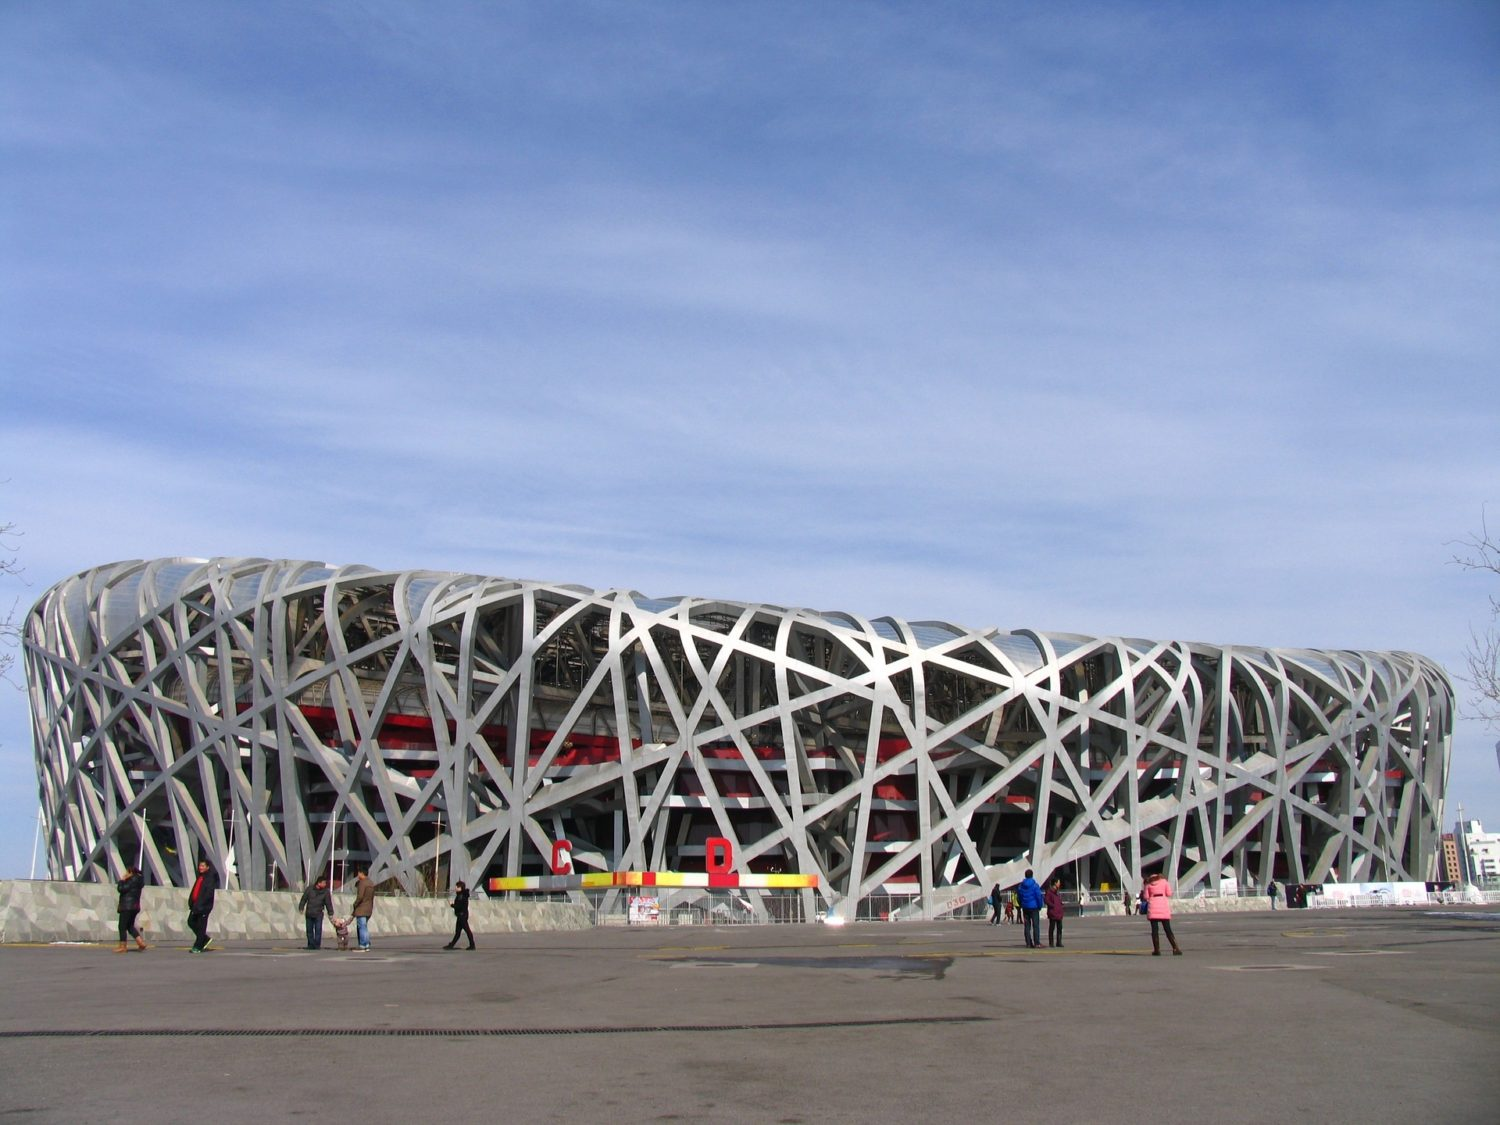 Beijing National Stadium, also known as the Bird's Nest Stadium